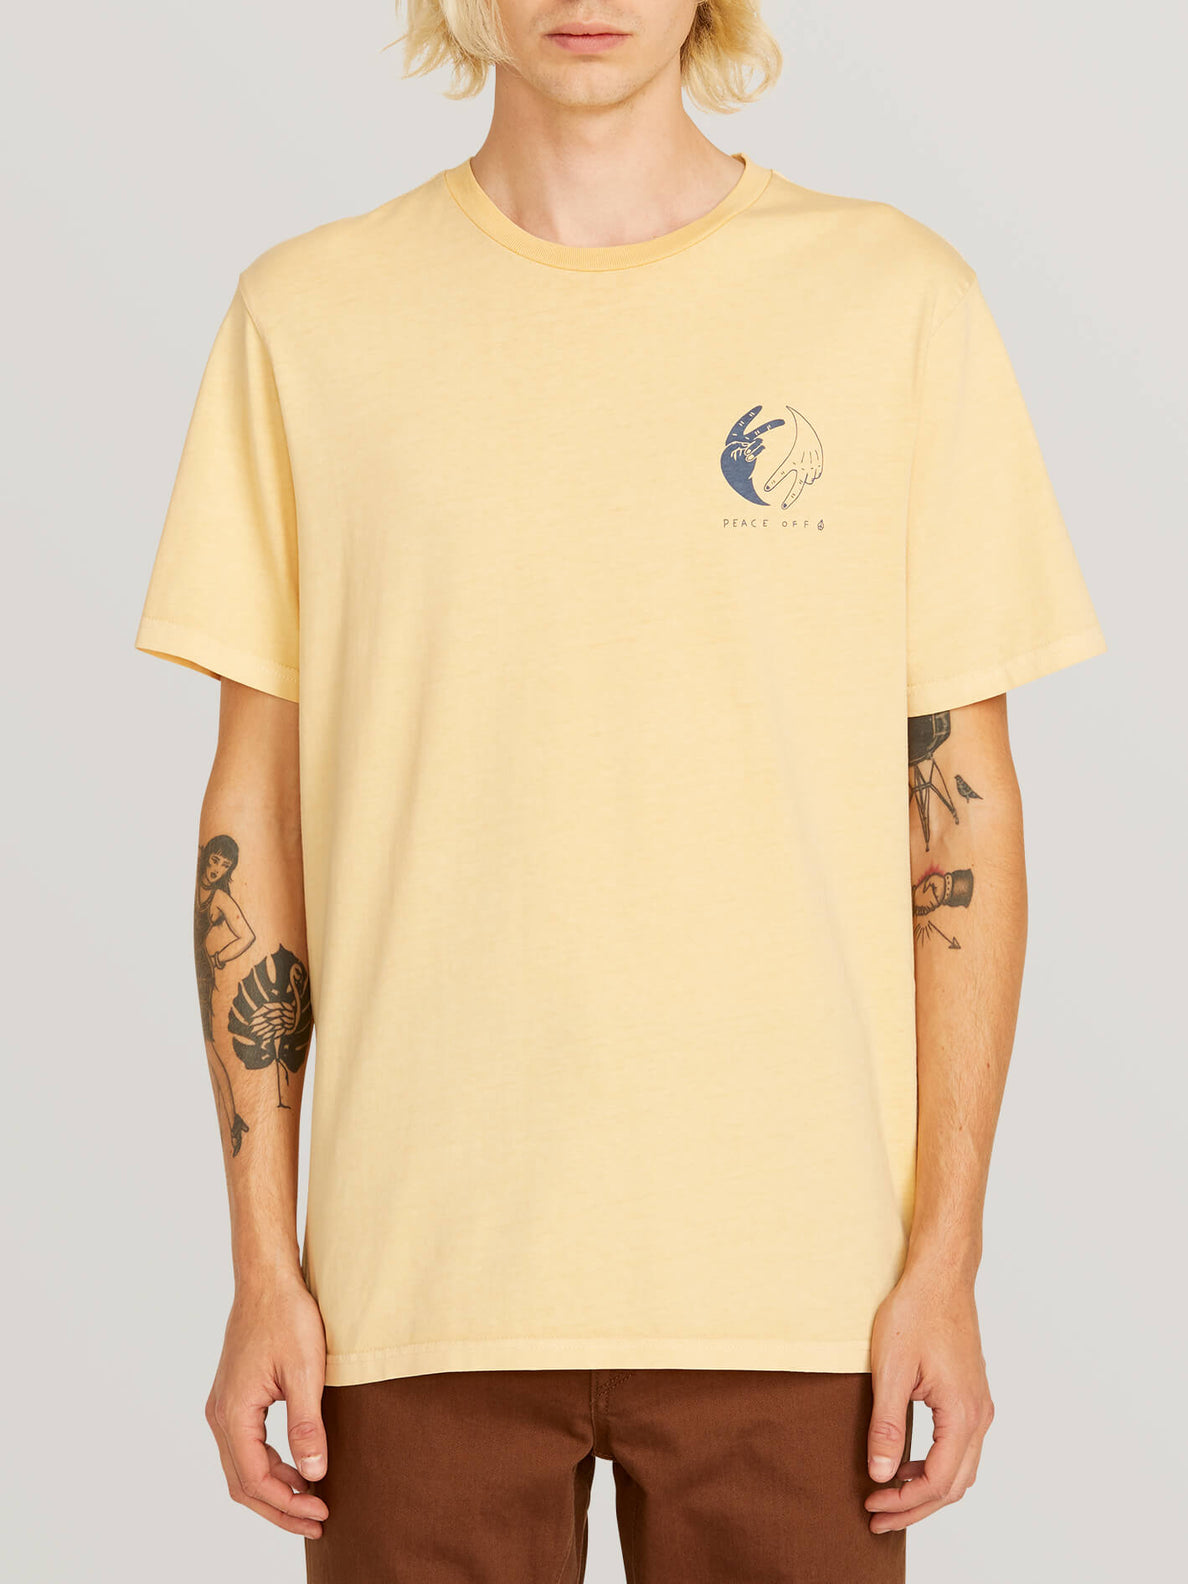 Peace Off Short Sleeve Tee In Light Peach, Front View